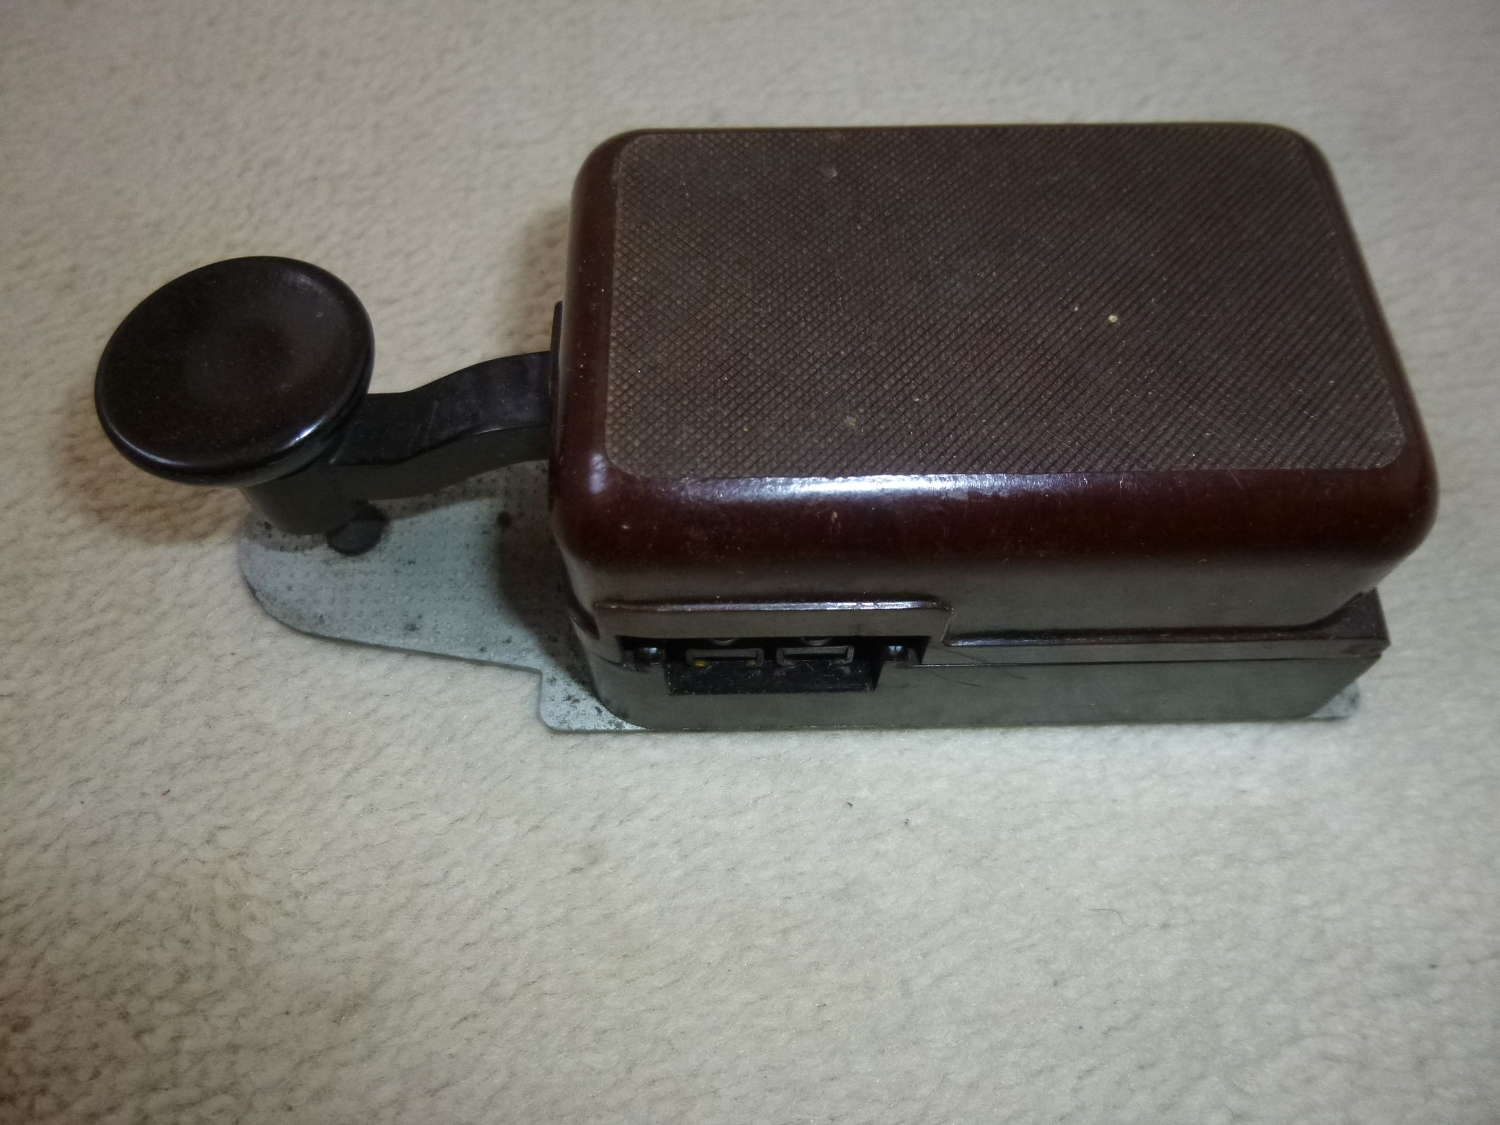 A late war Luftwaffe T2 morse key for FuG10 radio